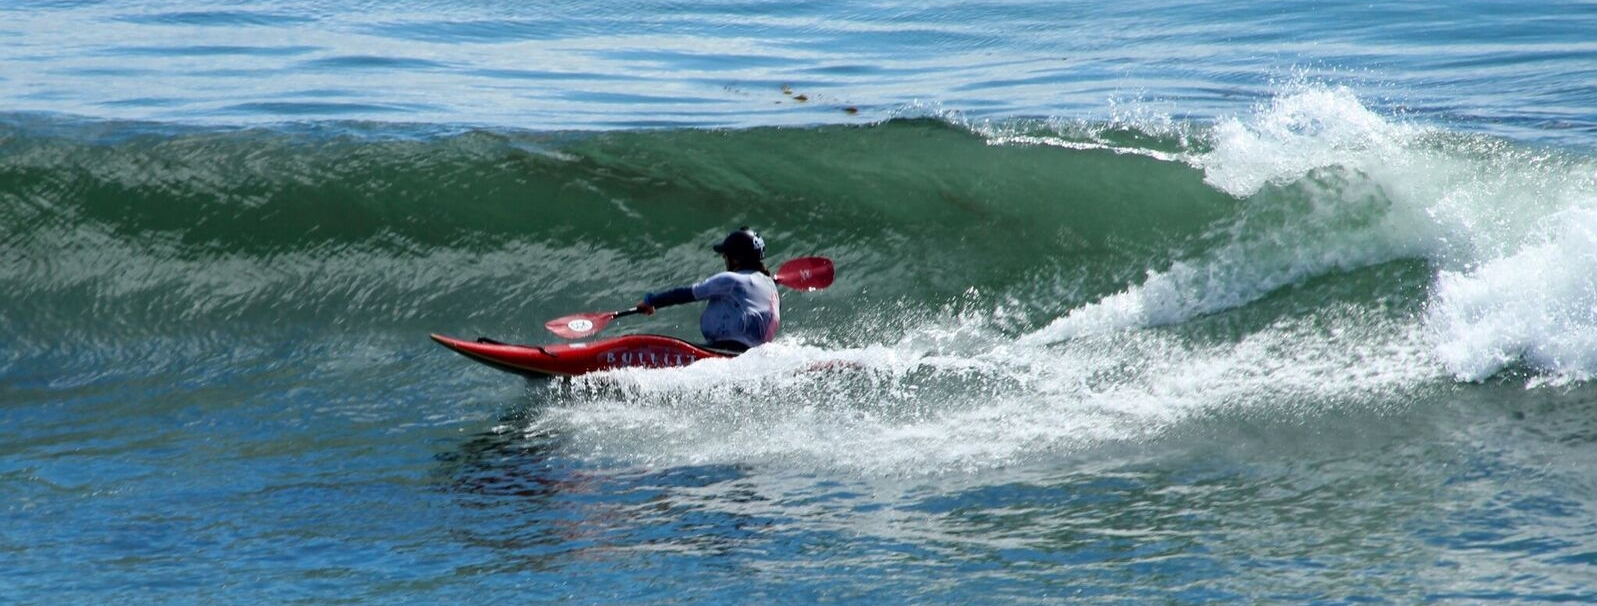 Groovin with the waves (Photo: Melissa DeMarie)